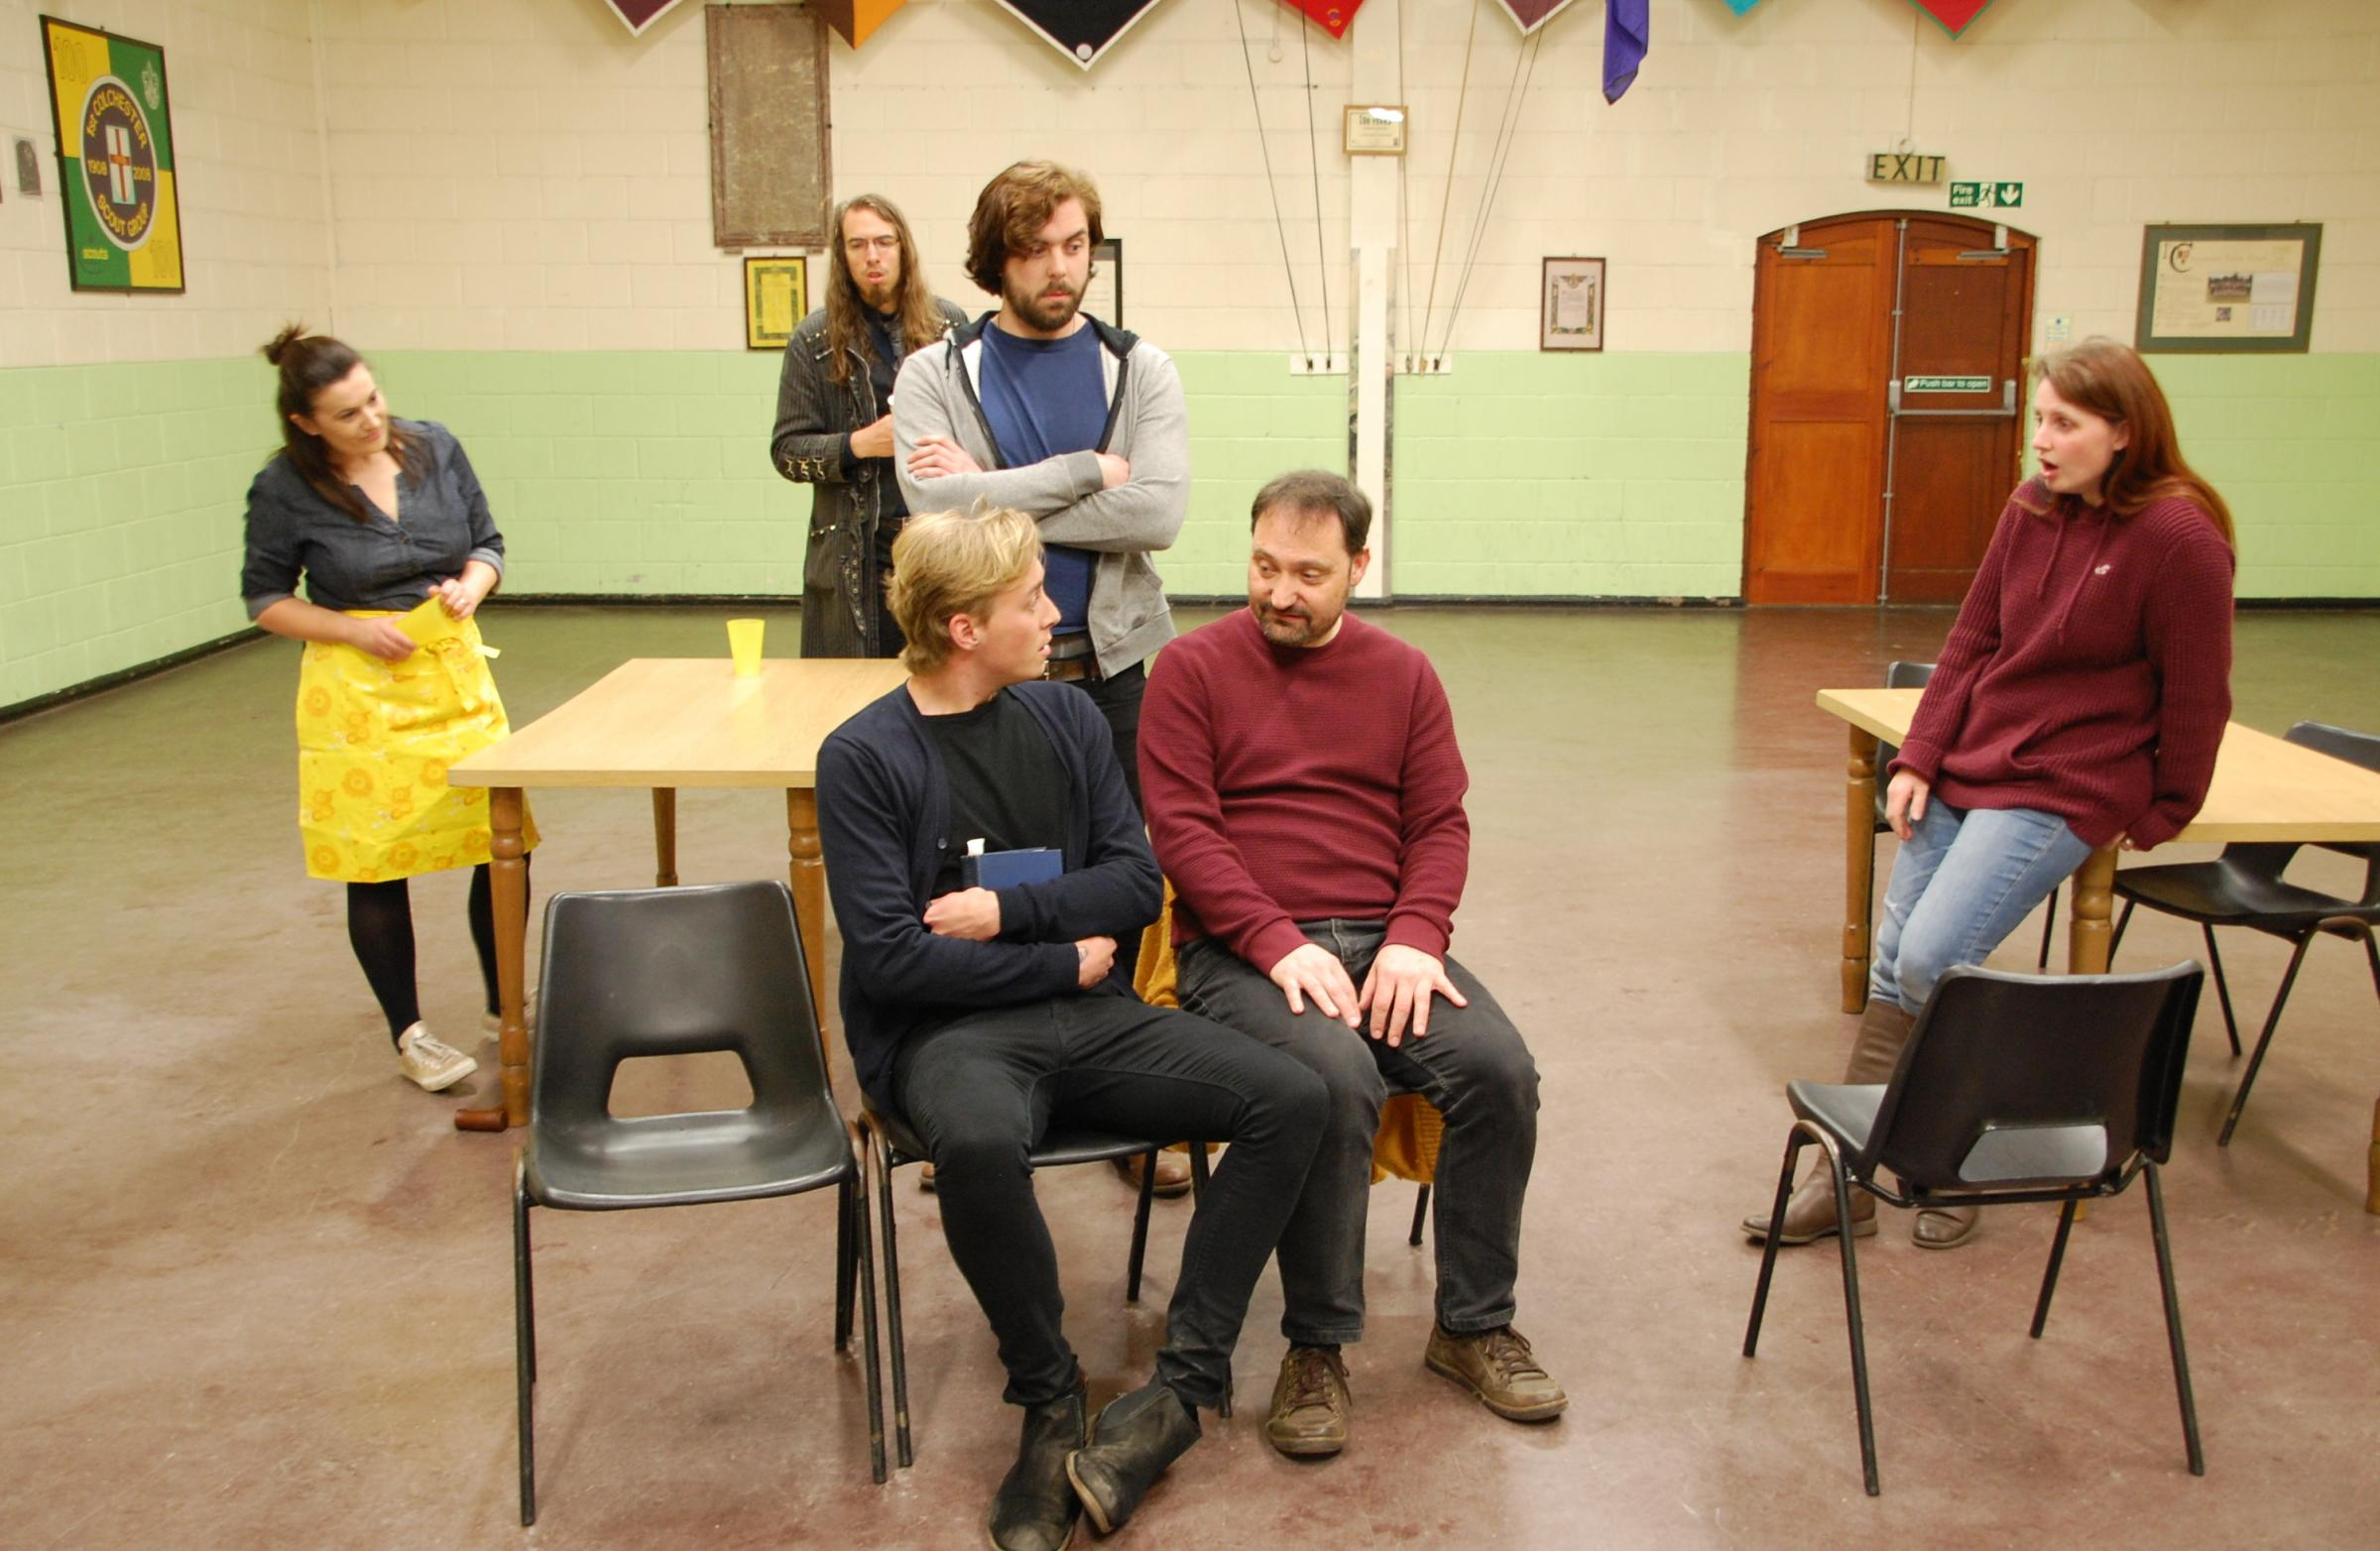 Rehearsals - The cast of The Foreigner appearing at the Headgate